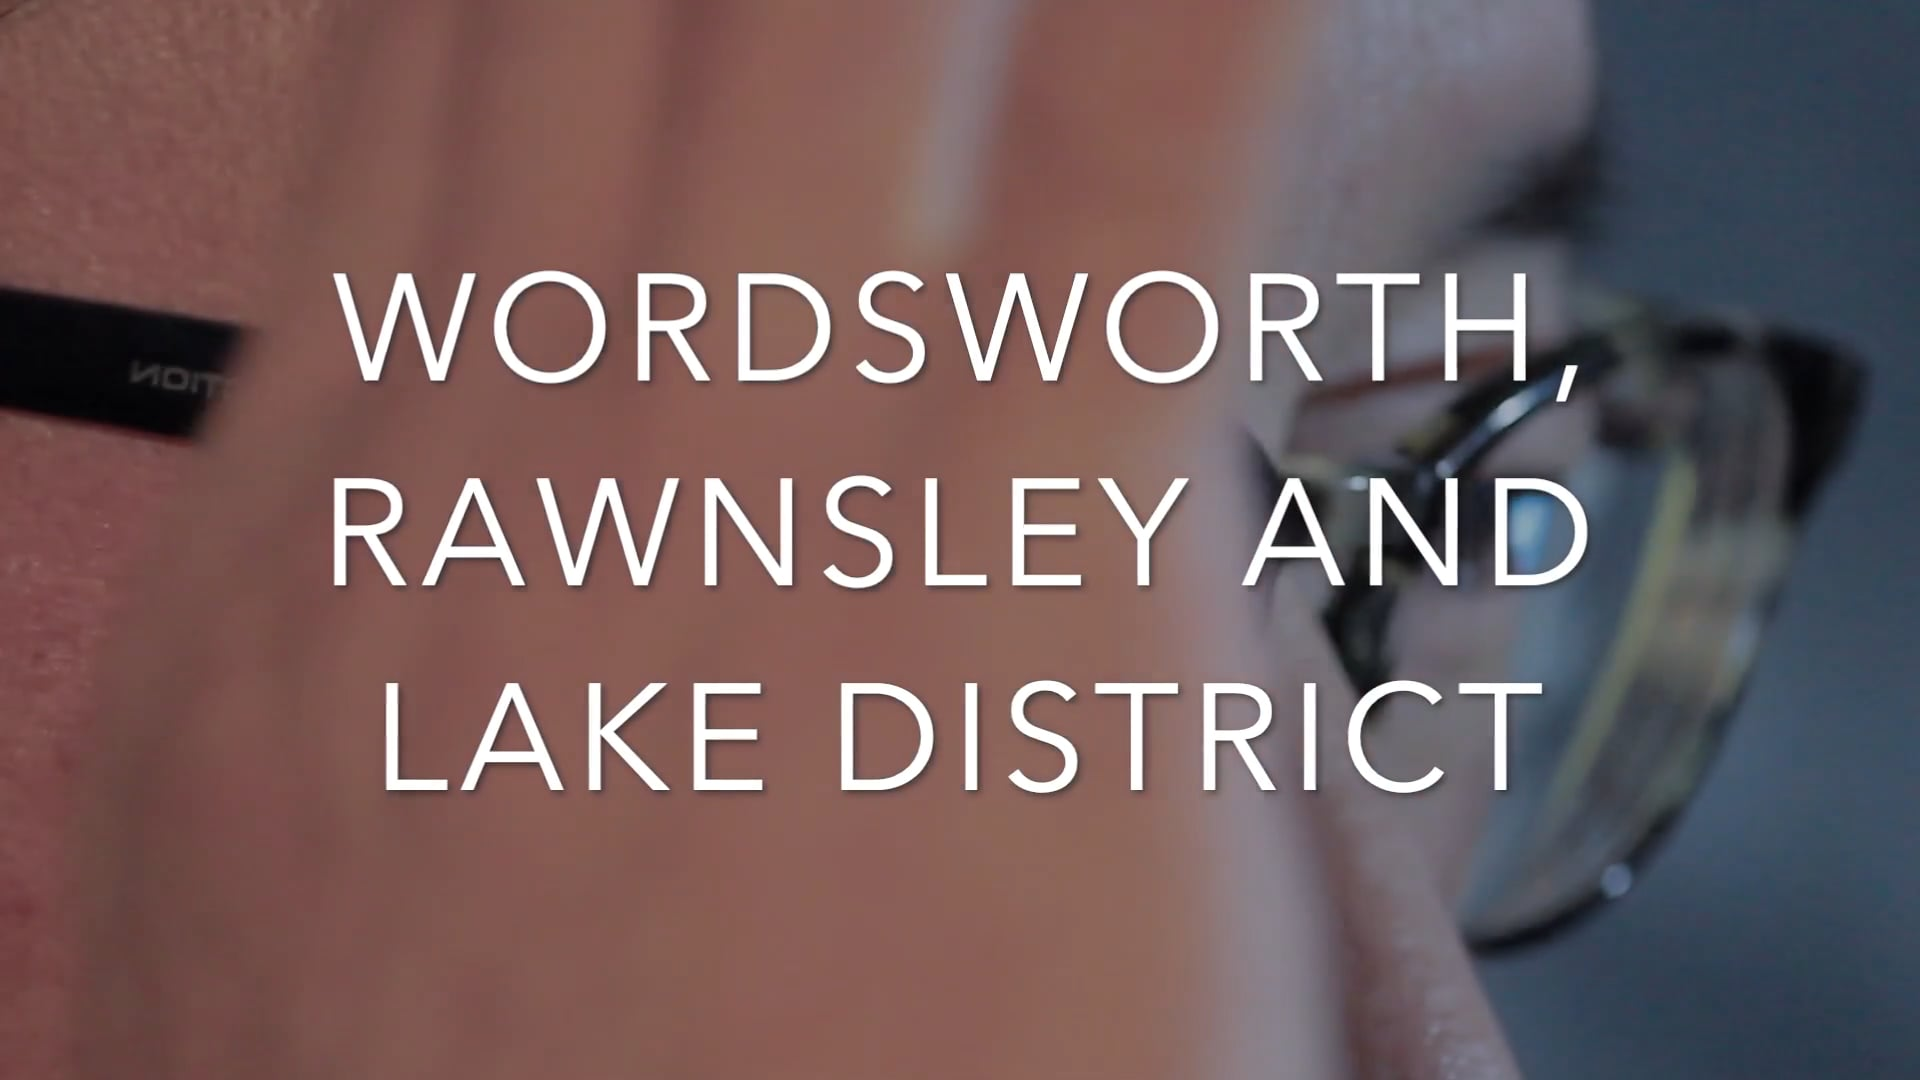 ACE Emergency Response Fund Project WORDSWORTH, RAWNSLEY AND LAKE DISTRICT